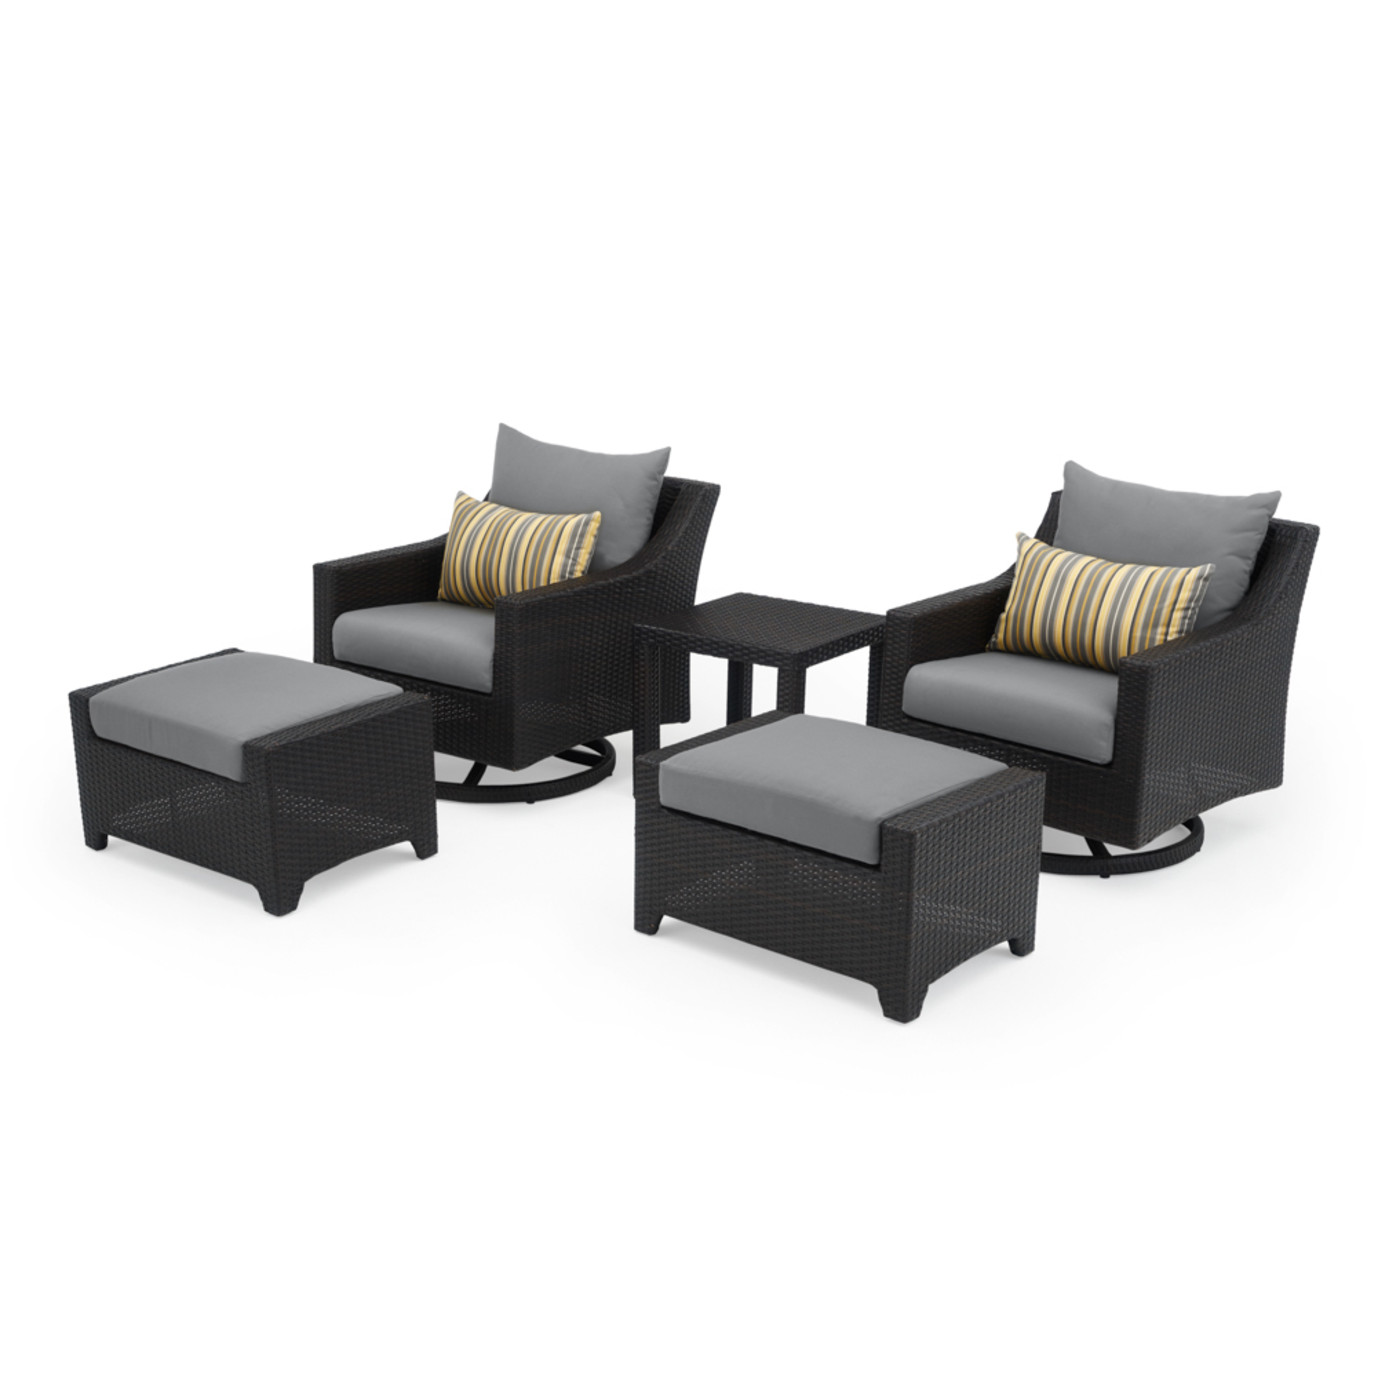 Deco 5 Piece Motion Club & Ottoman Set - Charcoal Gray